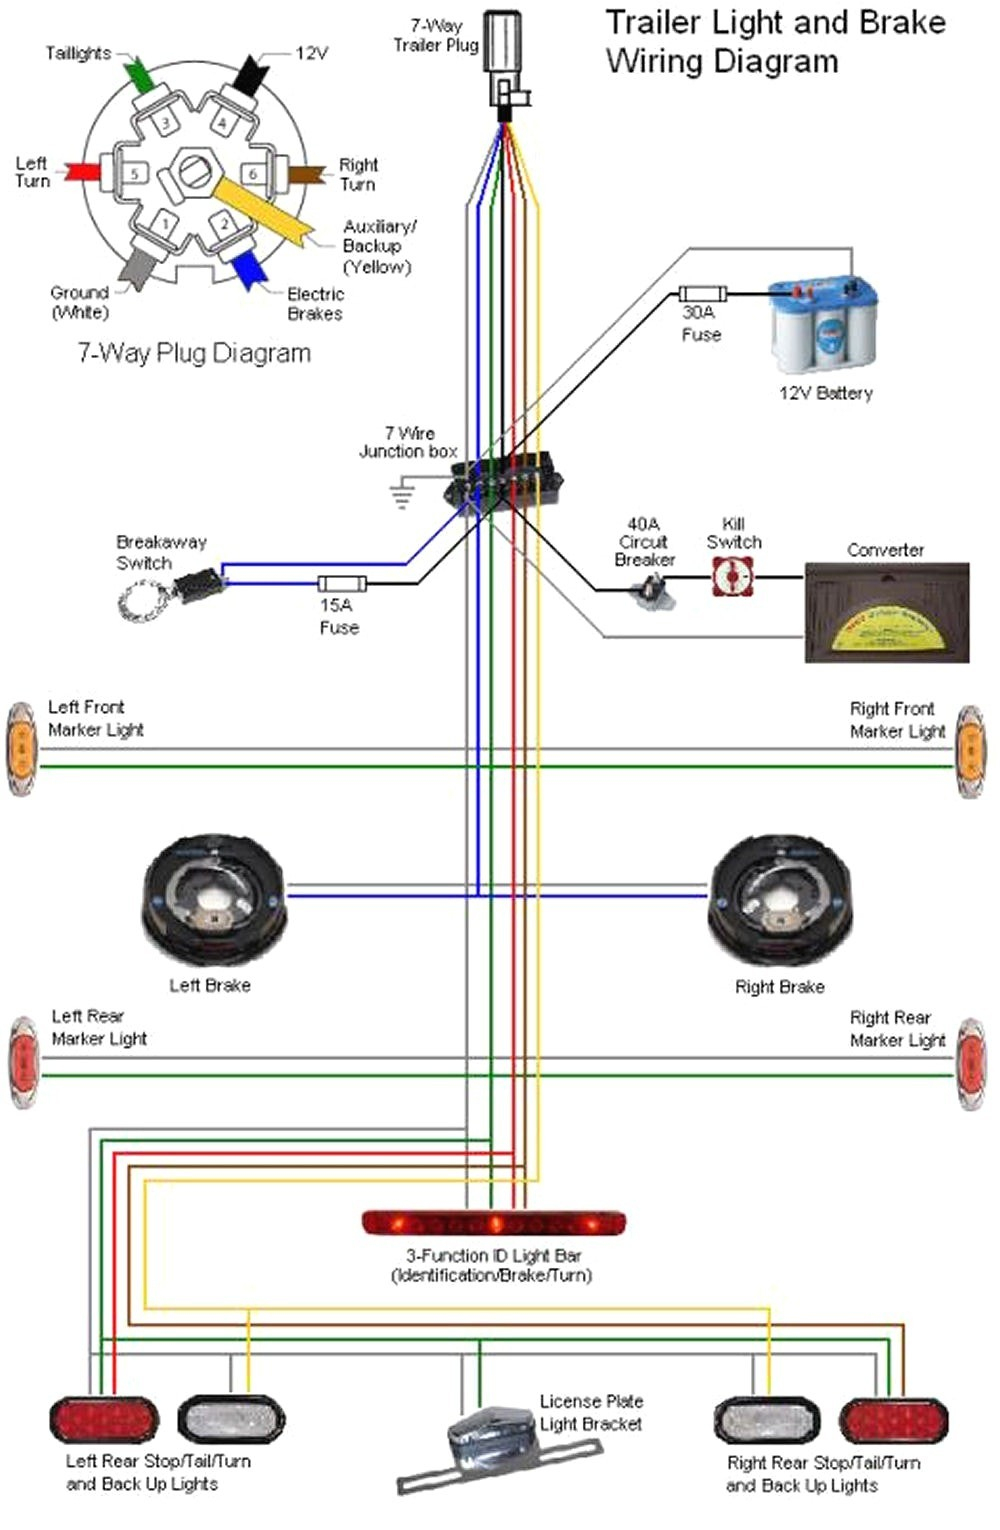 7 Pin Trailer Plug Wiring Diagram Flat Amazing How To Wire Blade - Trailer Connector Wiring Diagram 7-Way